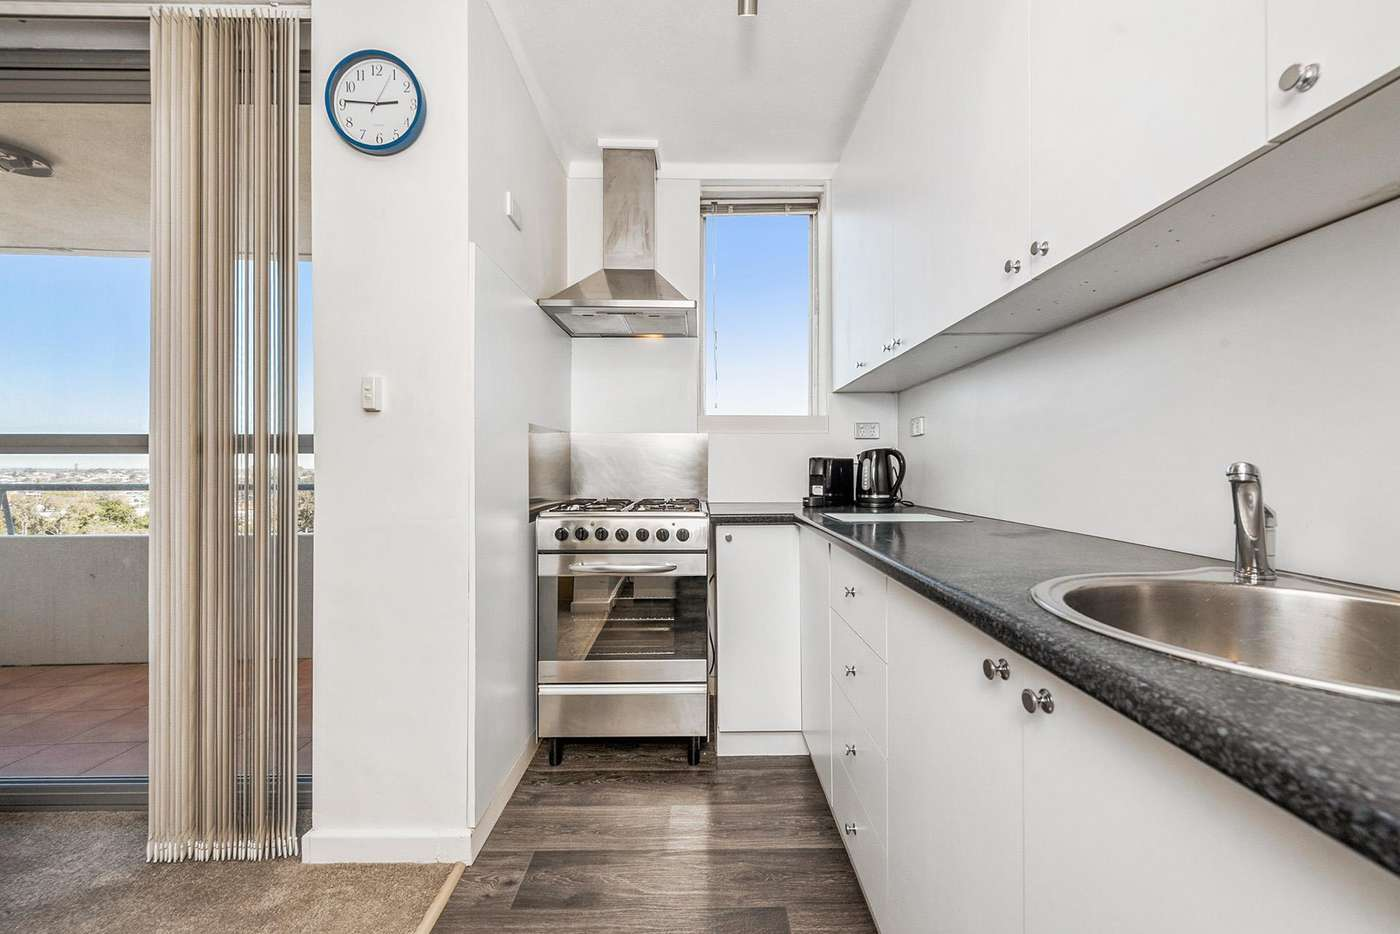 Main view of Homely apartment listing, 112/154 Mill Point Road, South Perth WA 6151